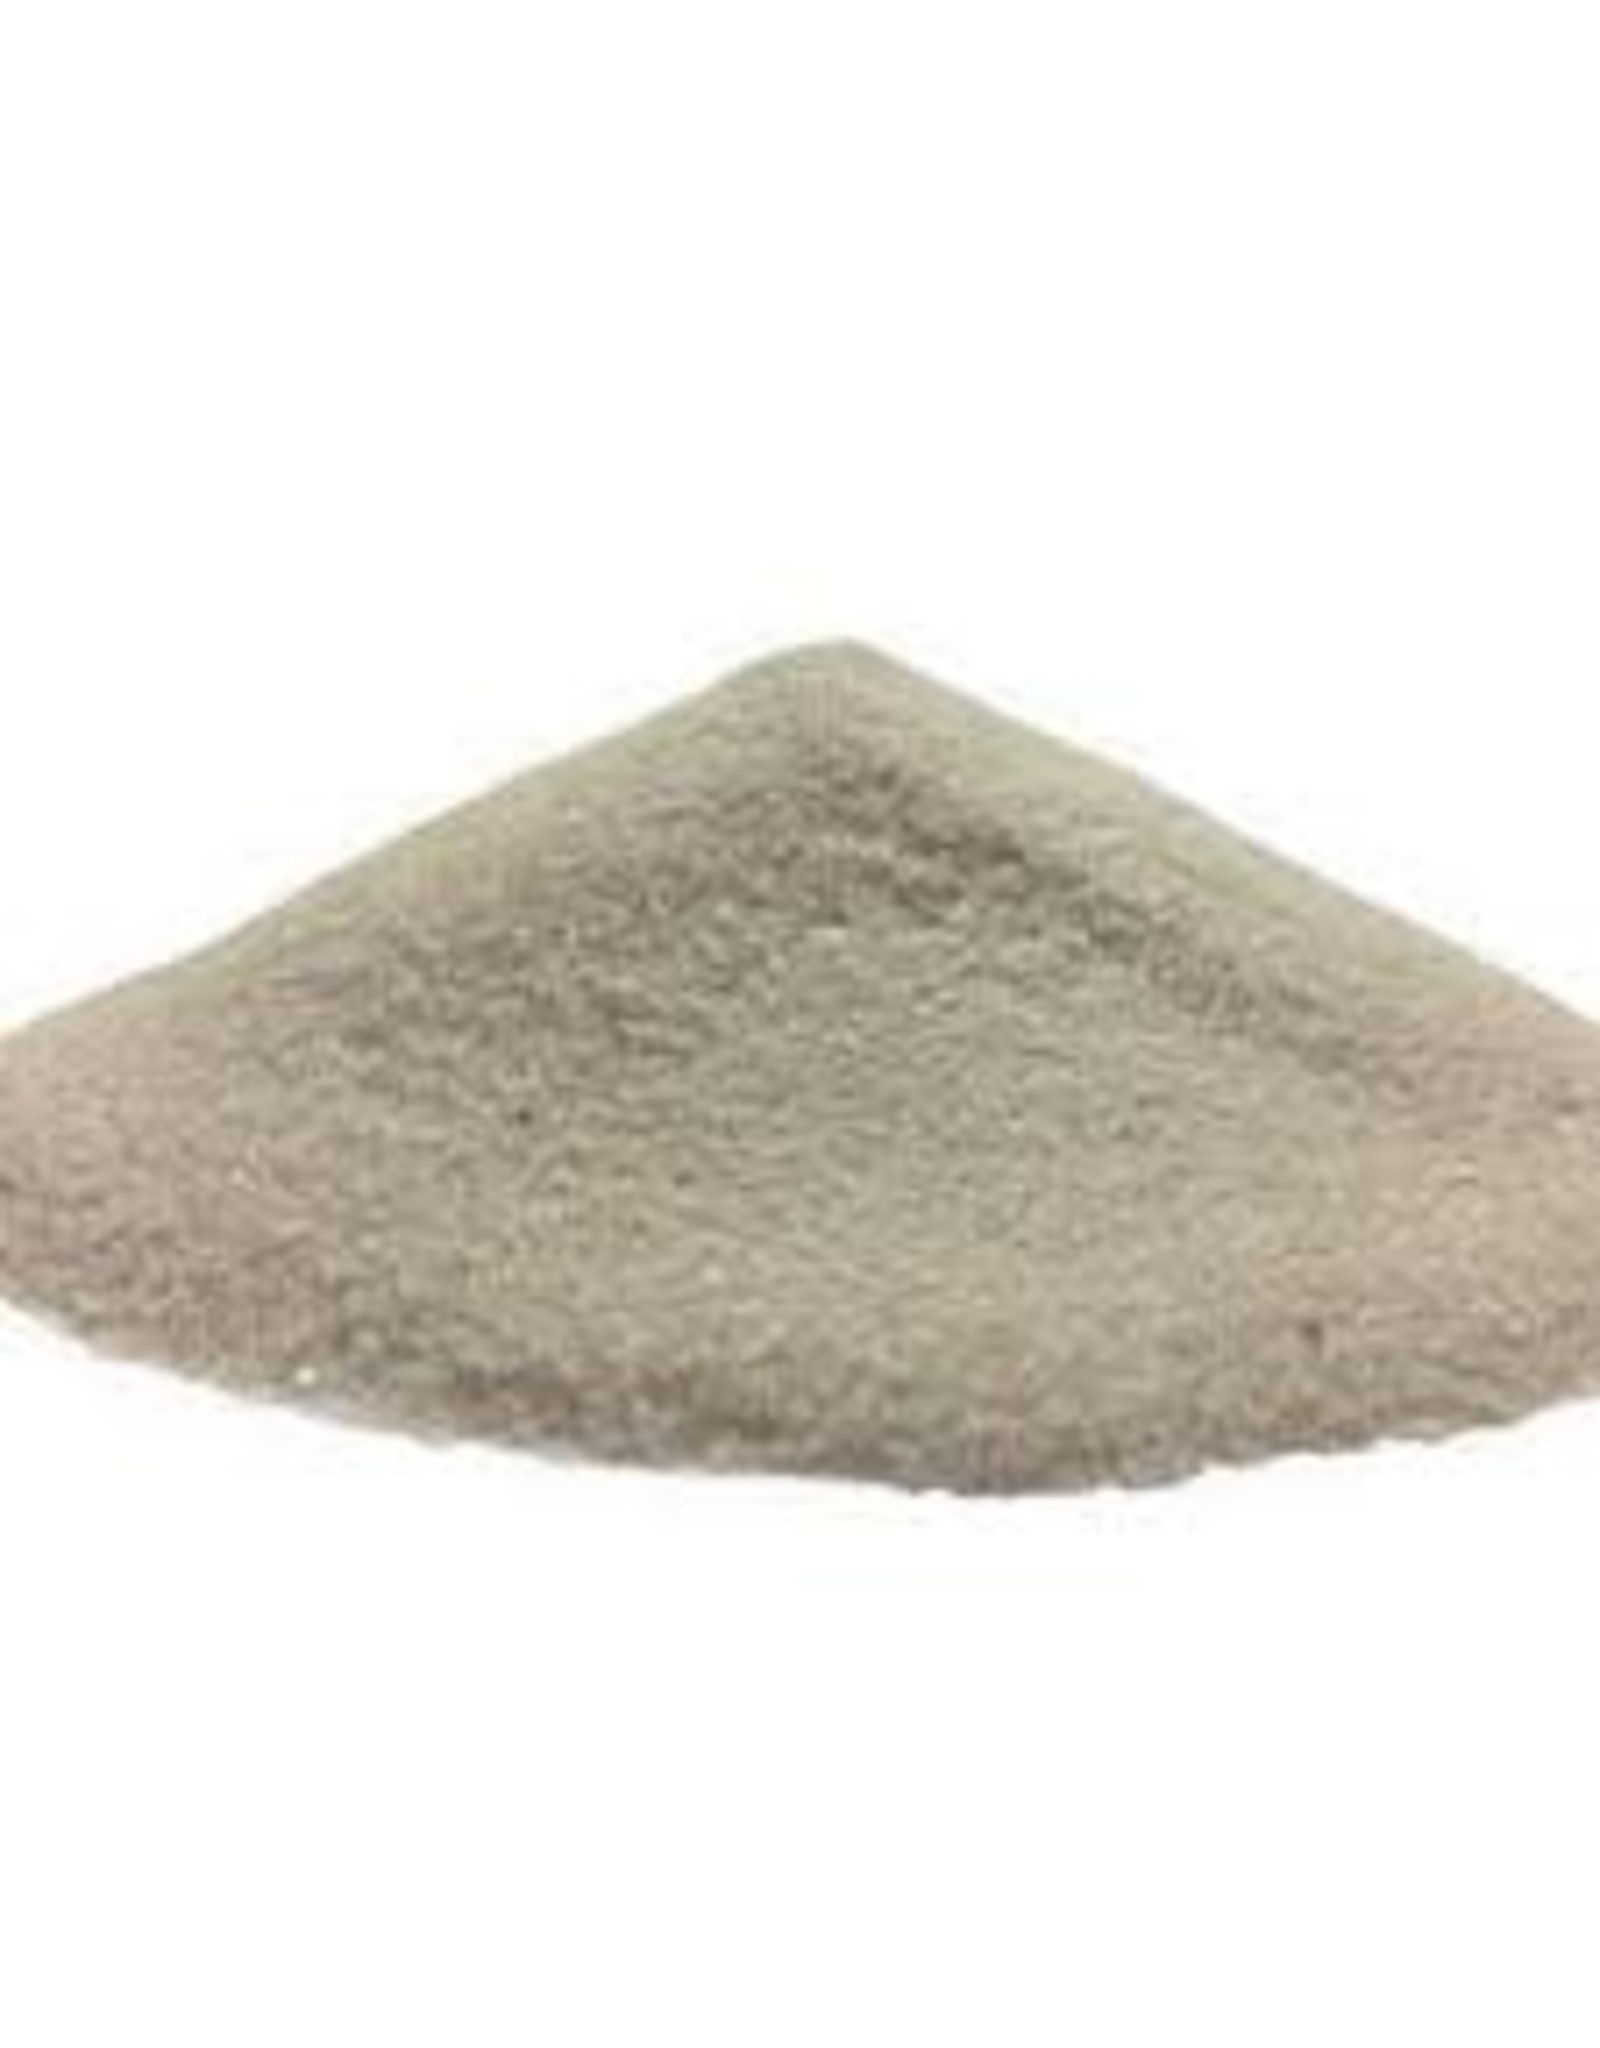 #2 SILICA GRIT (C-CAN)